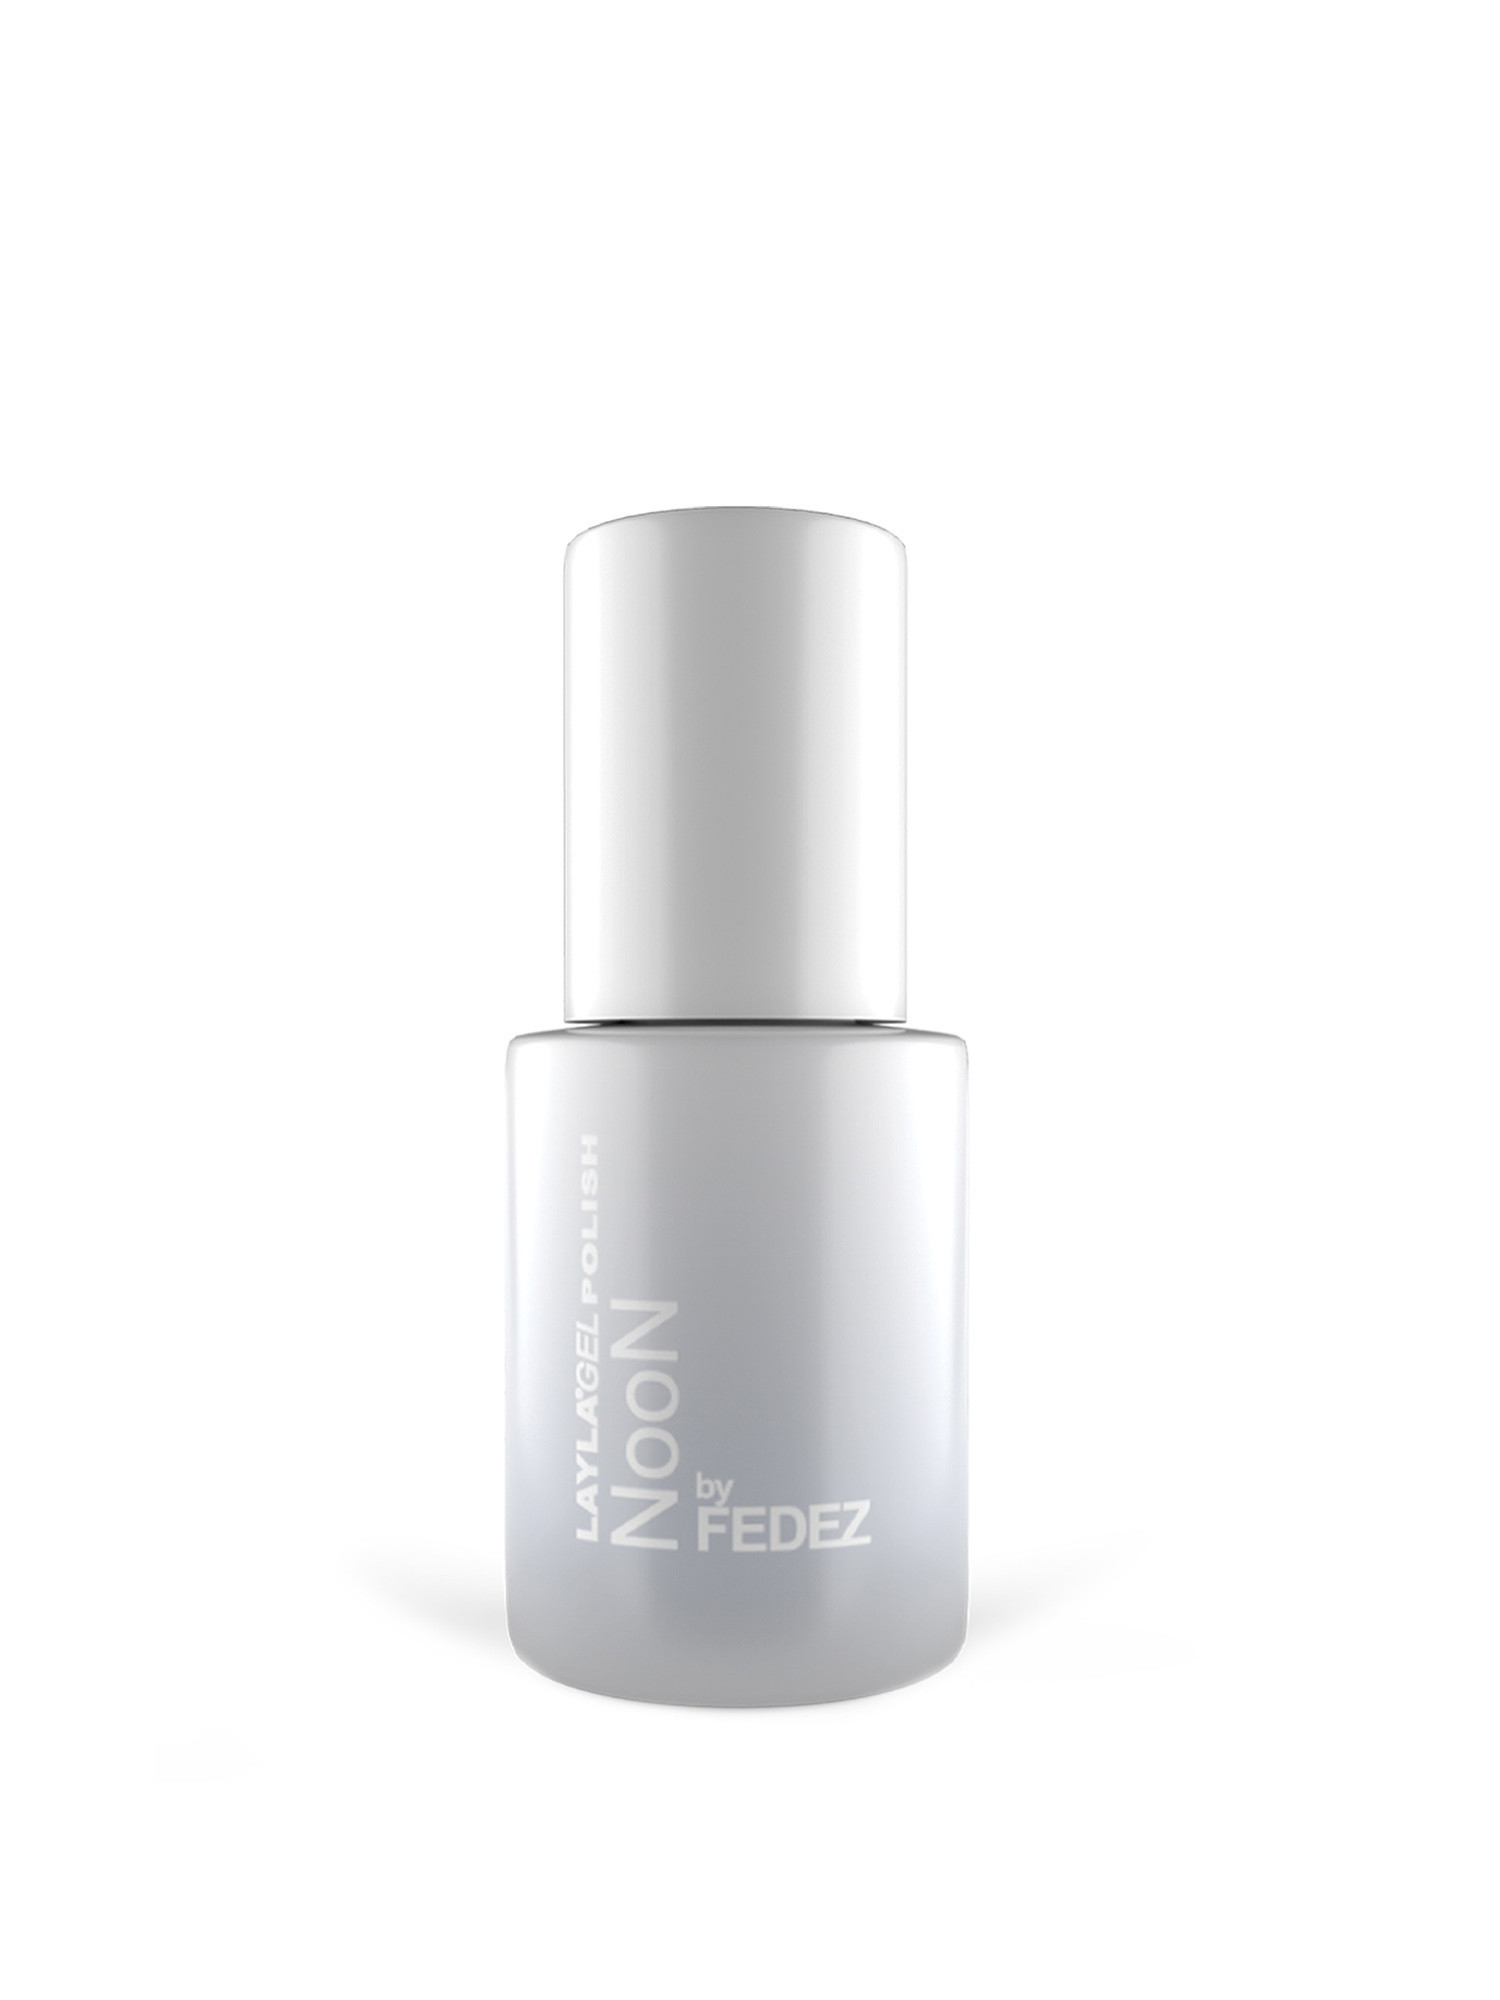 Gel polish NooN by Fedez - Faded, Bianco, large image number 0